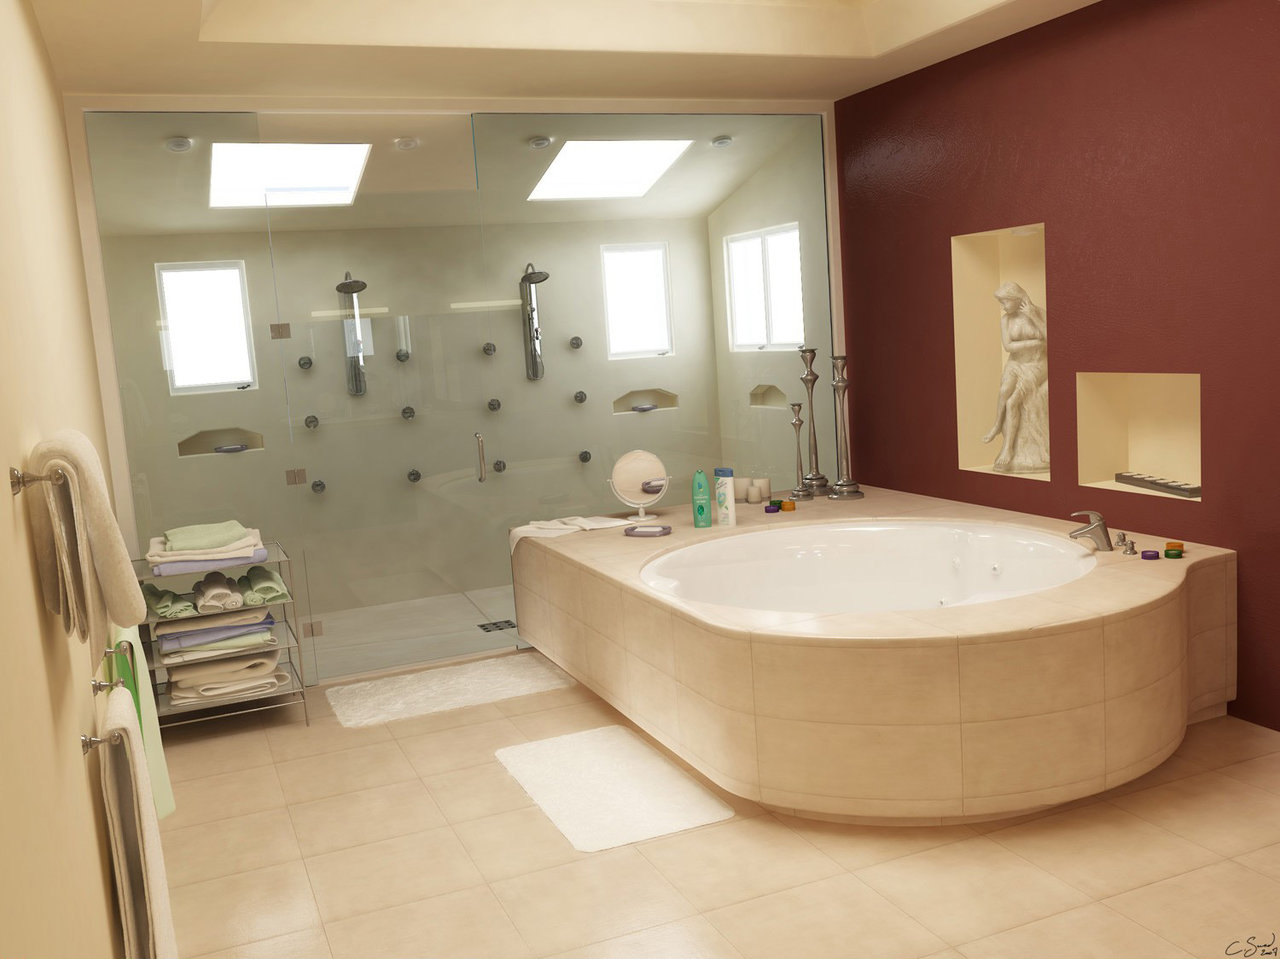 Bathroom Design Ideas: Bathroom Design Ideas